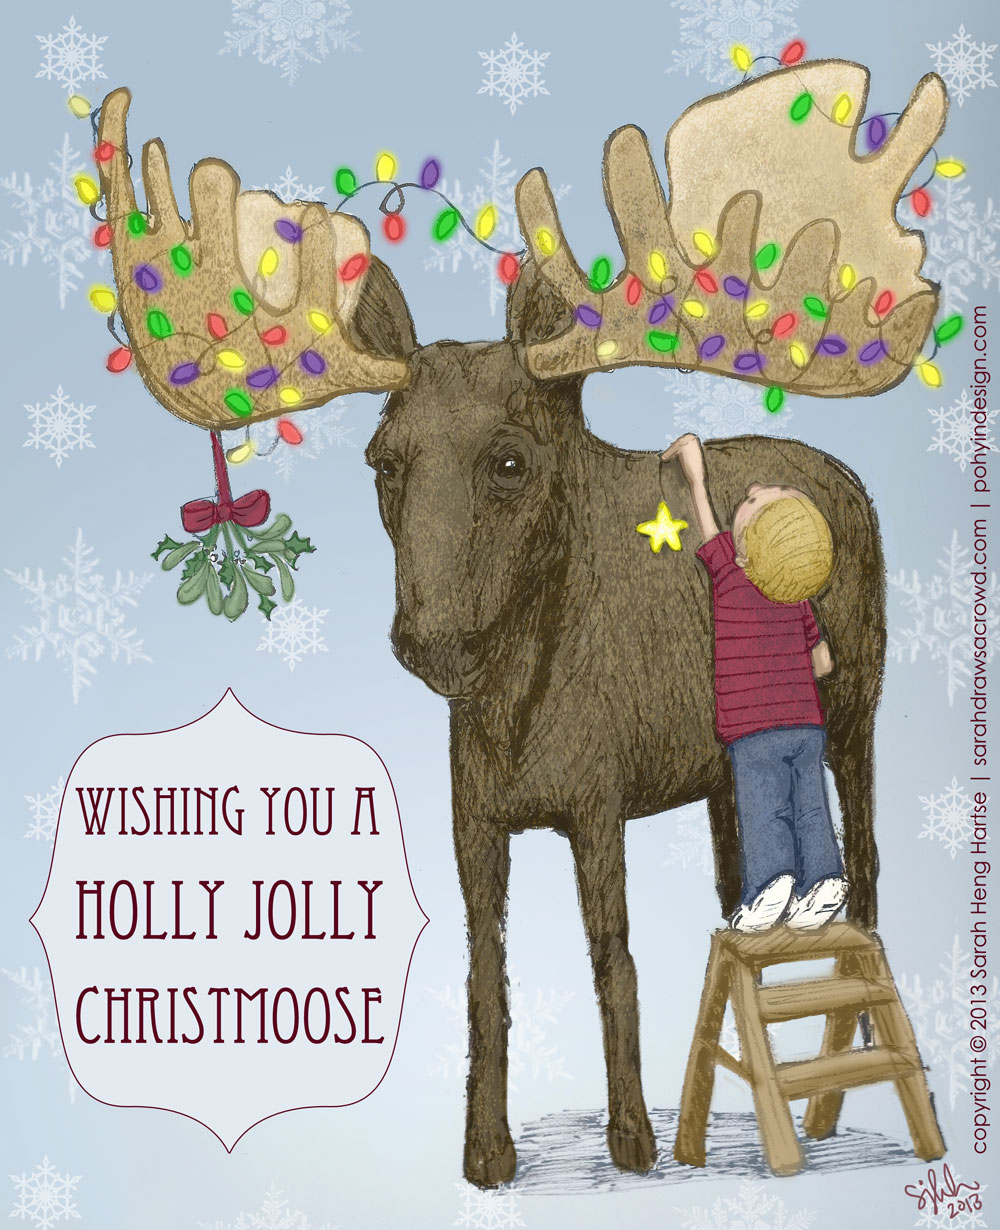 Have a Holly Jolly Christmoose! from Sarah Heng Hartse